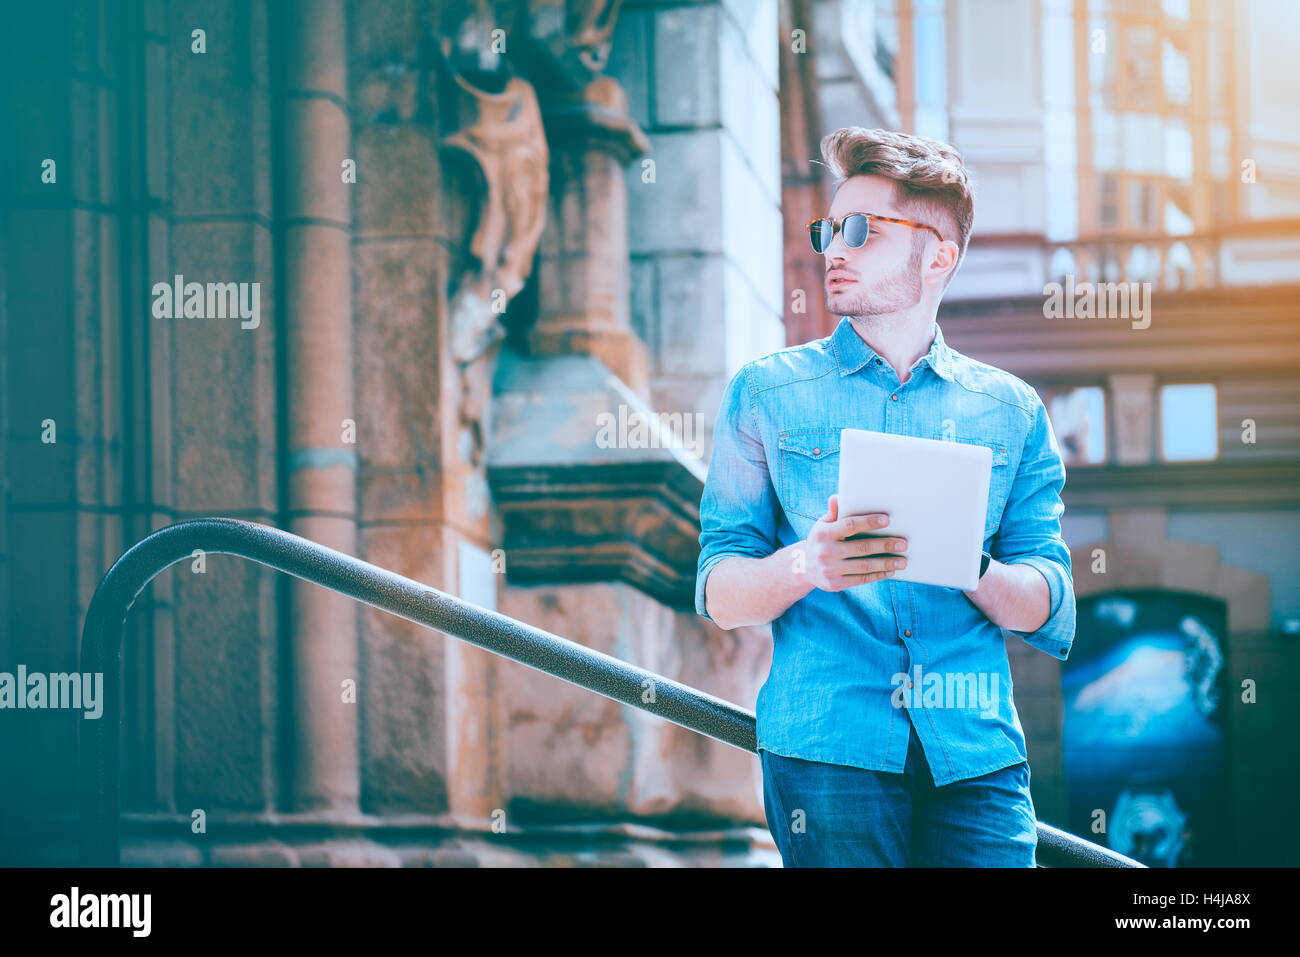 Handsome serious man using tablet - Stock Image